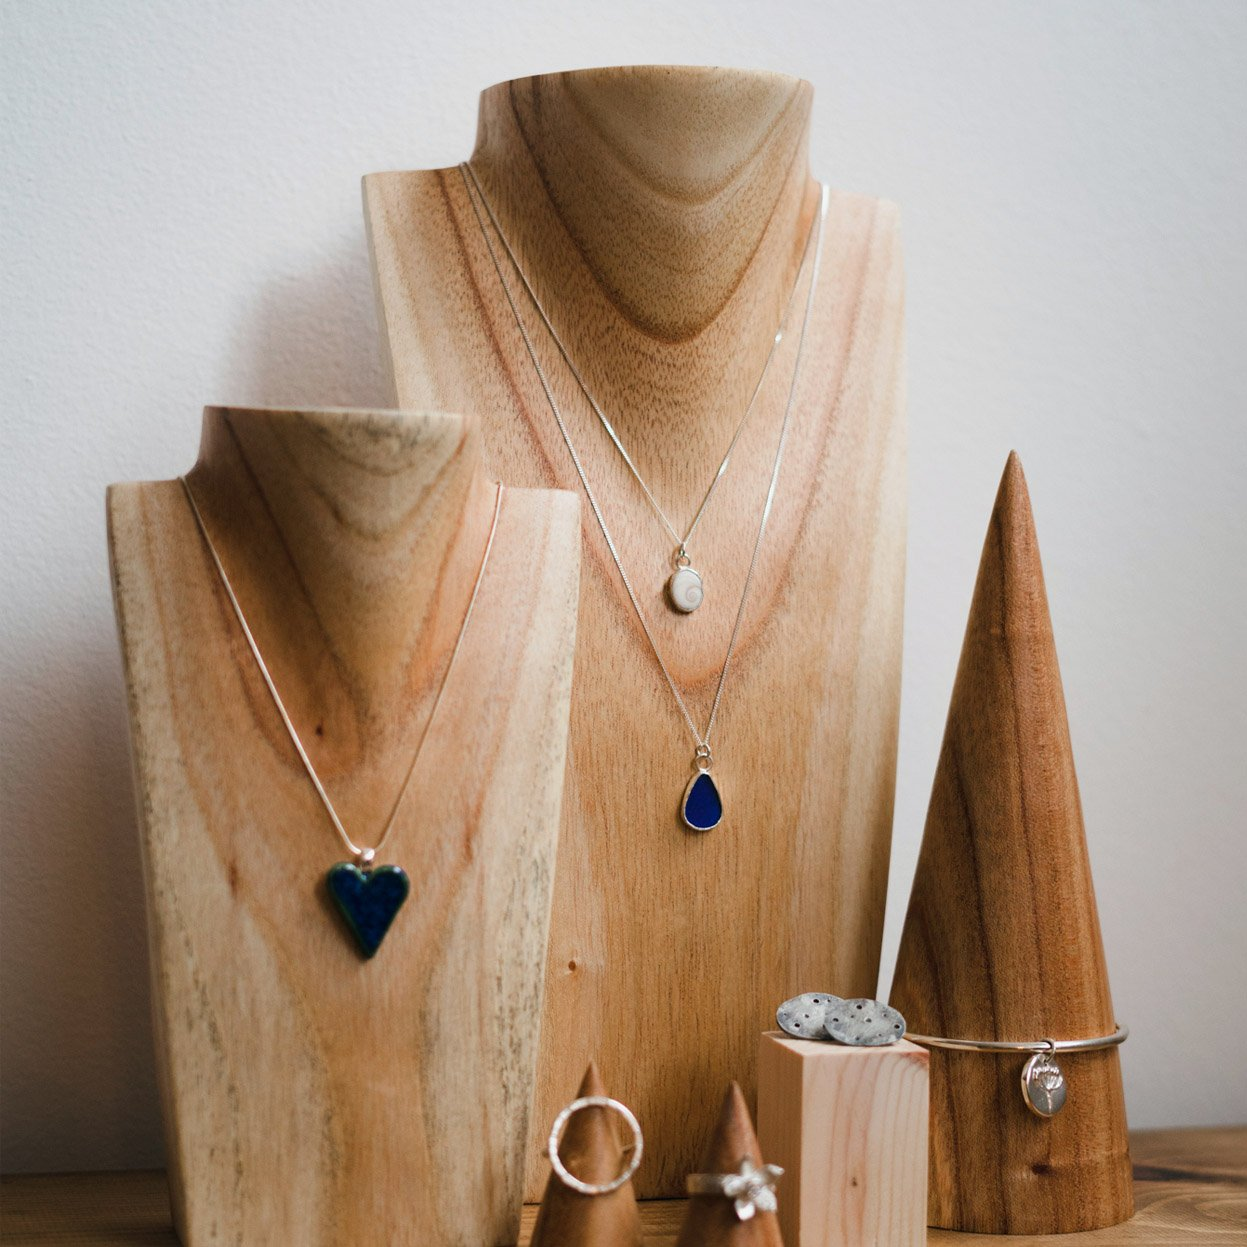 Jewellery at Inspire Makers